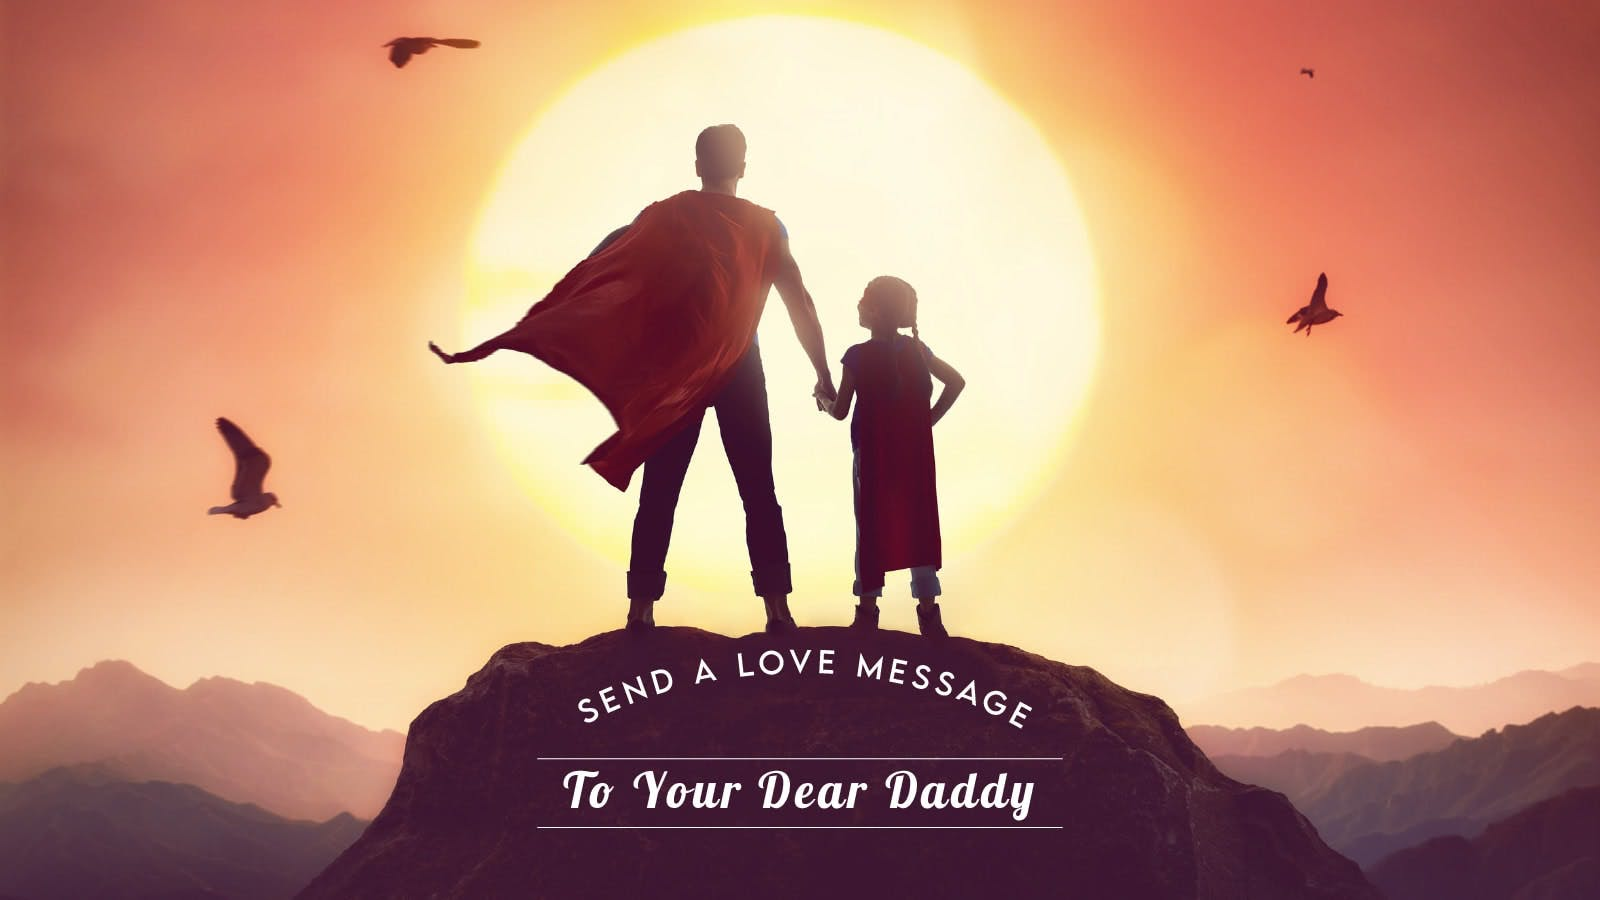 Send a Love Message to Your Dear Daddy